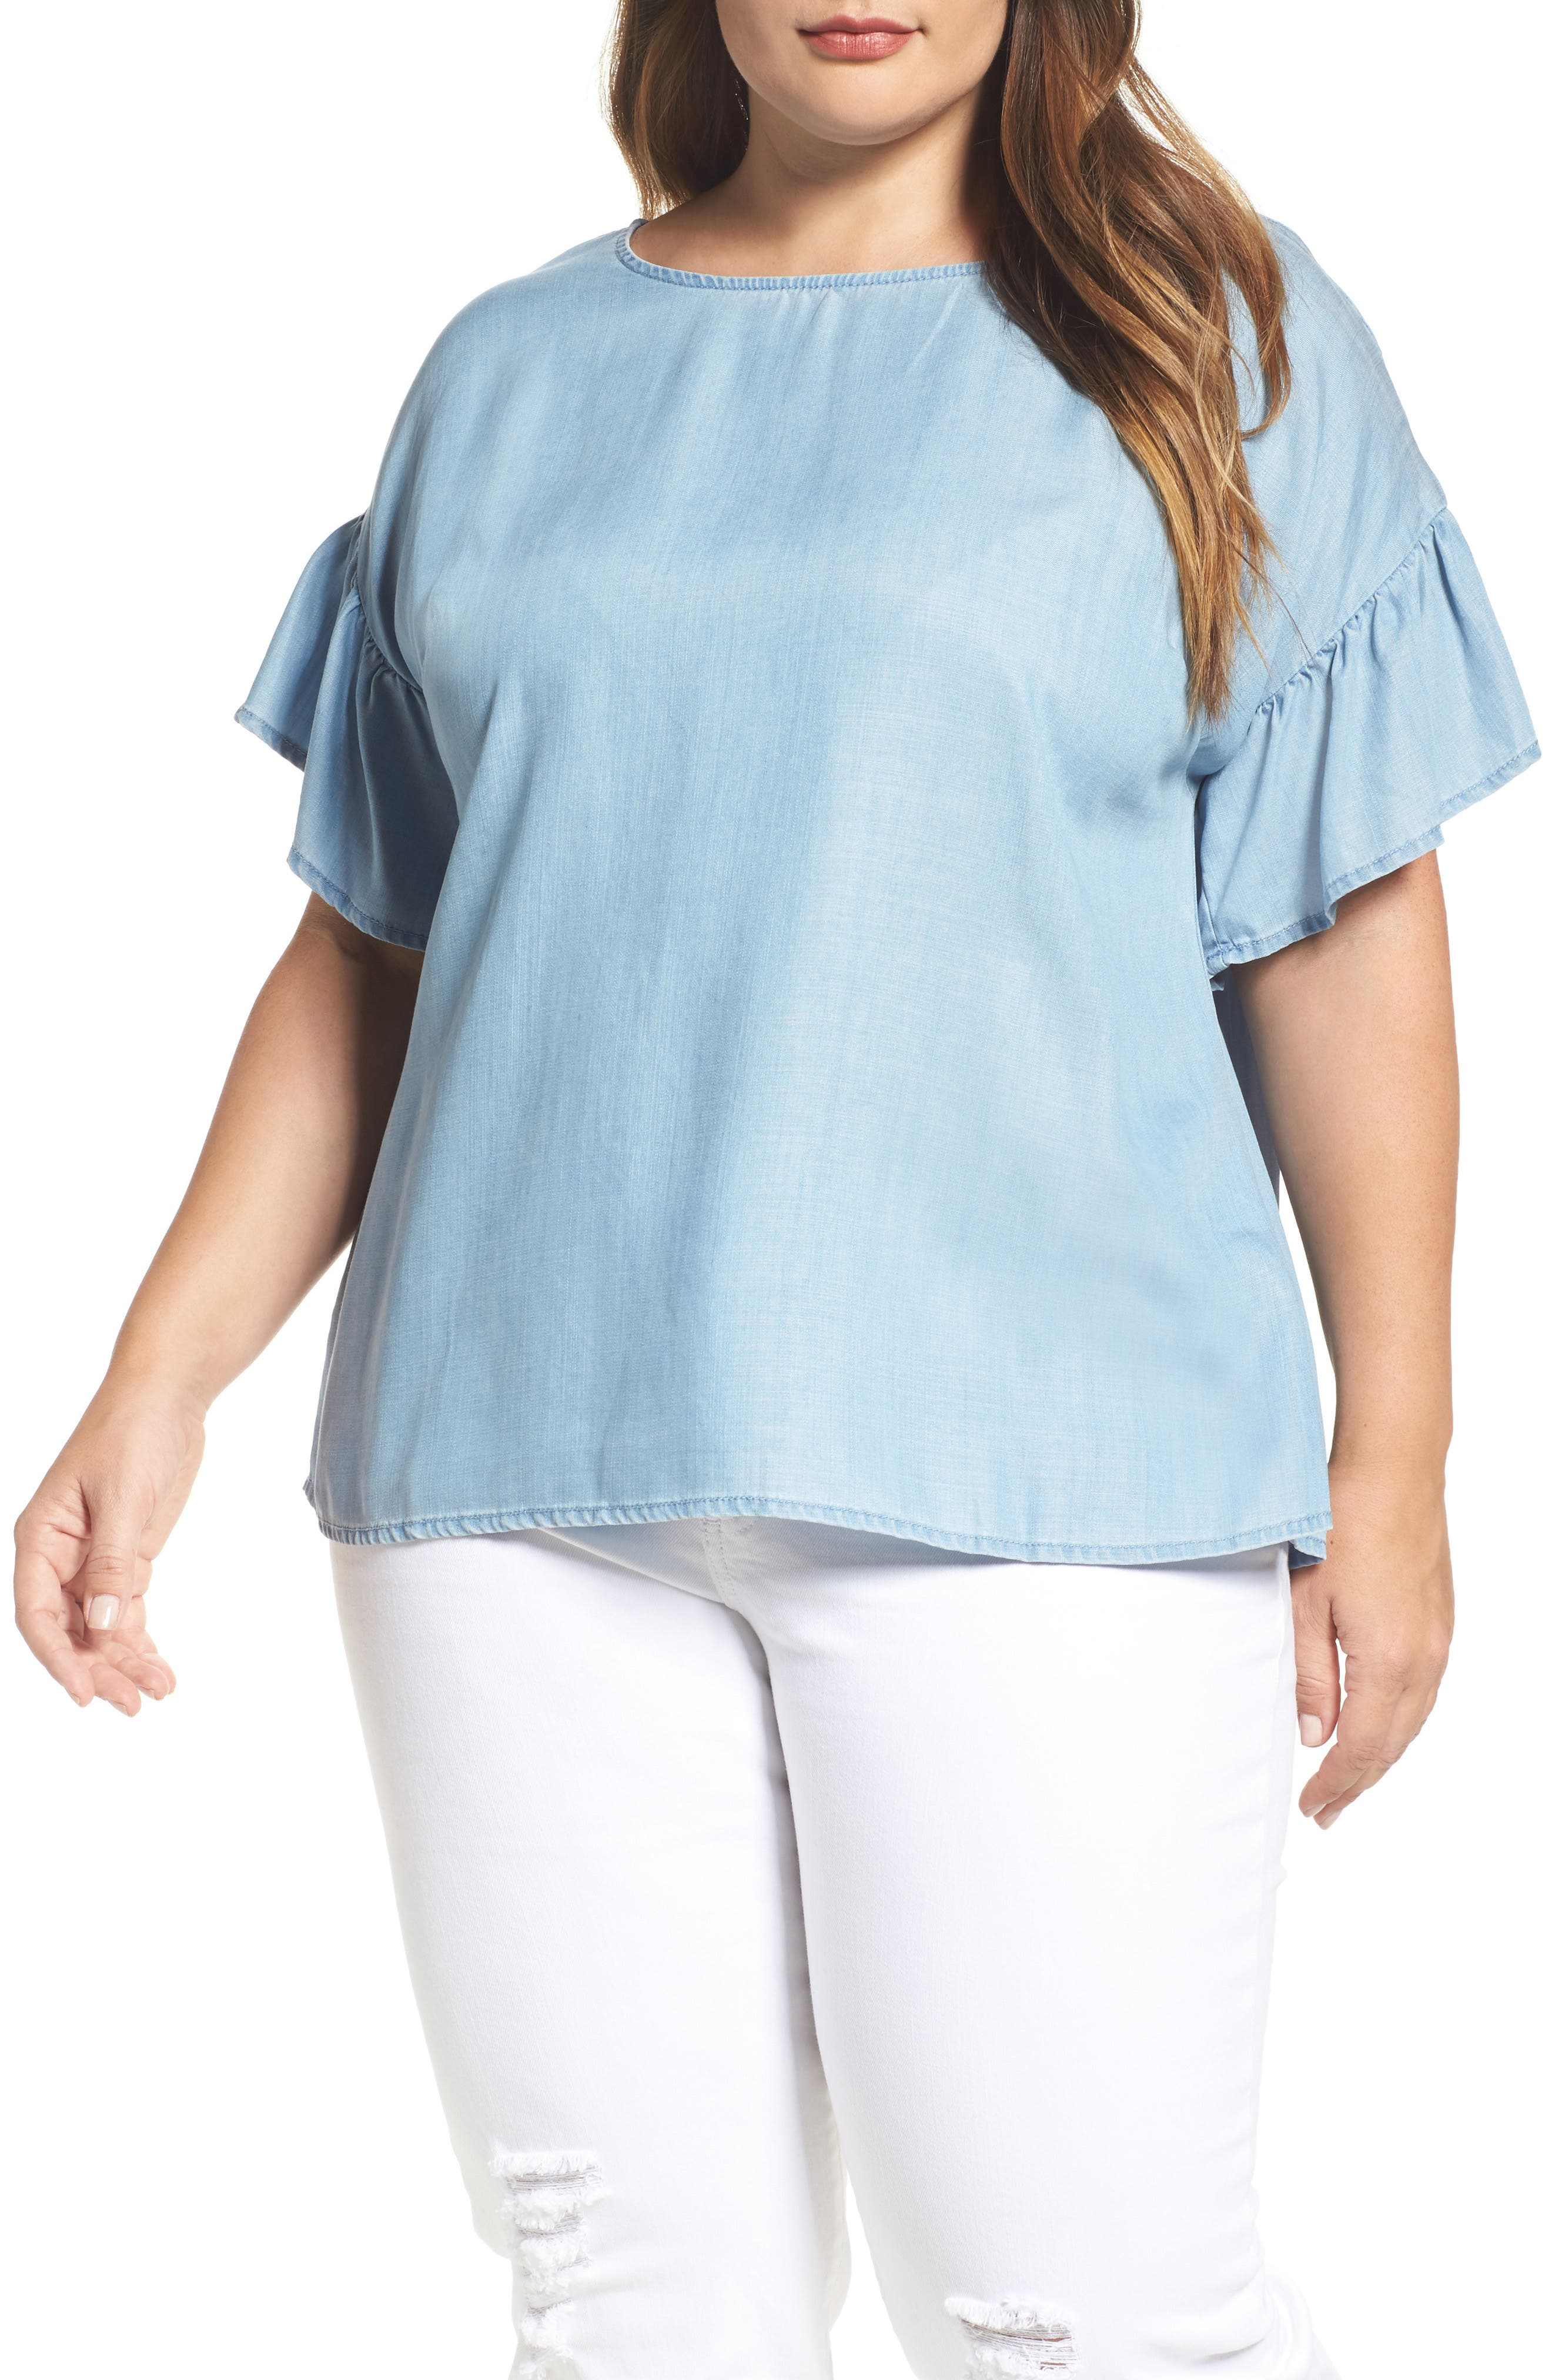 Alternate Image 1 Selected - Two by Vince Camuto Ruffle Sleeve Chambray Top (Plus Size)